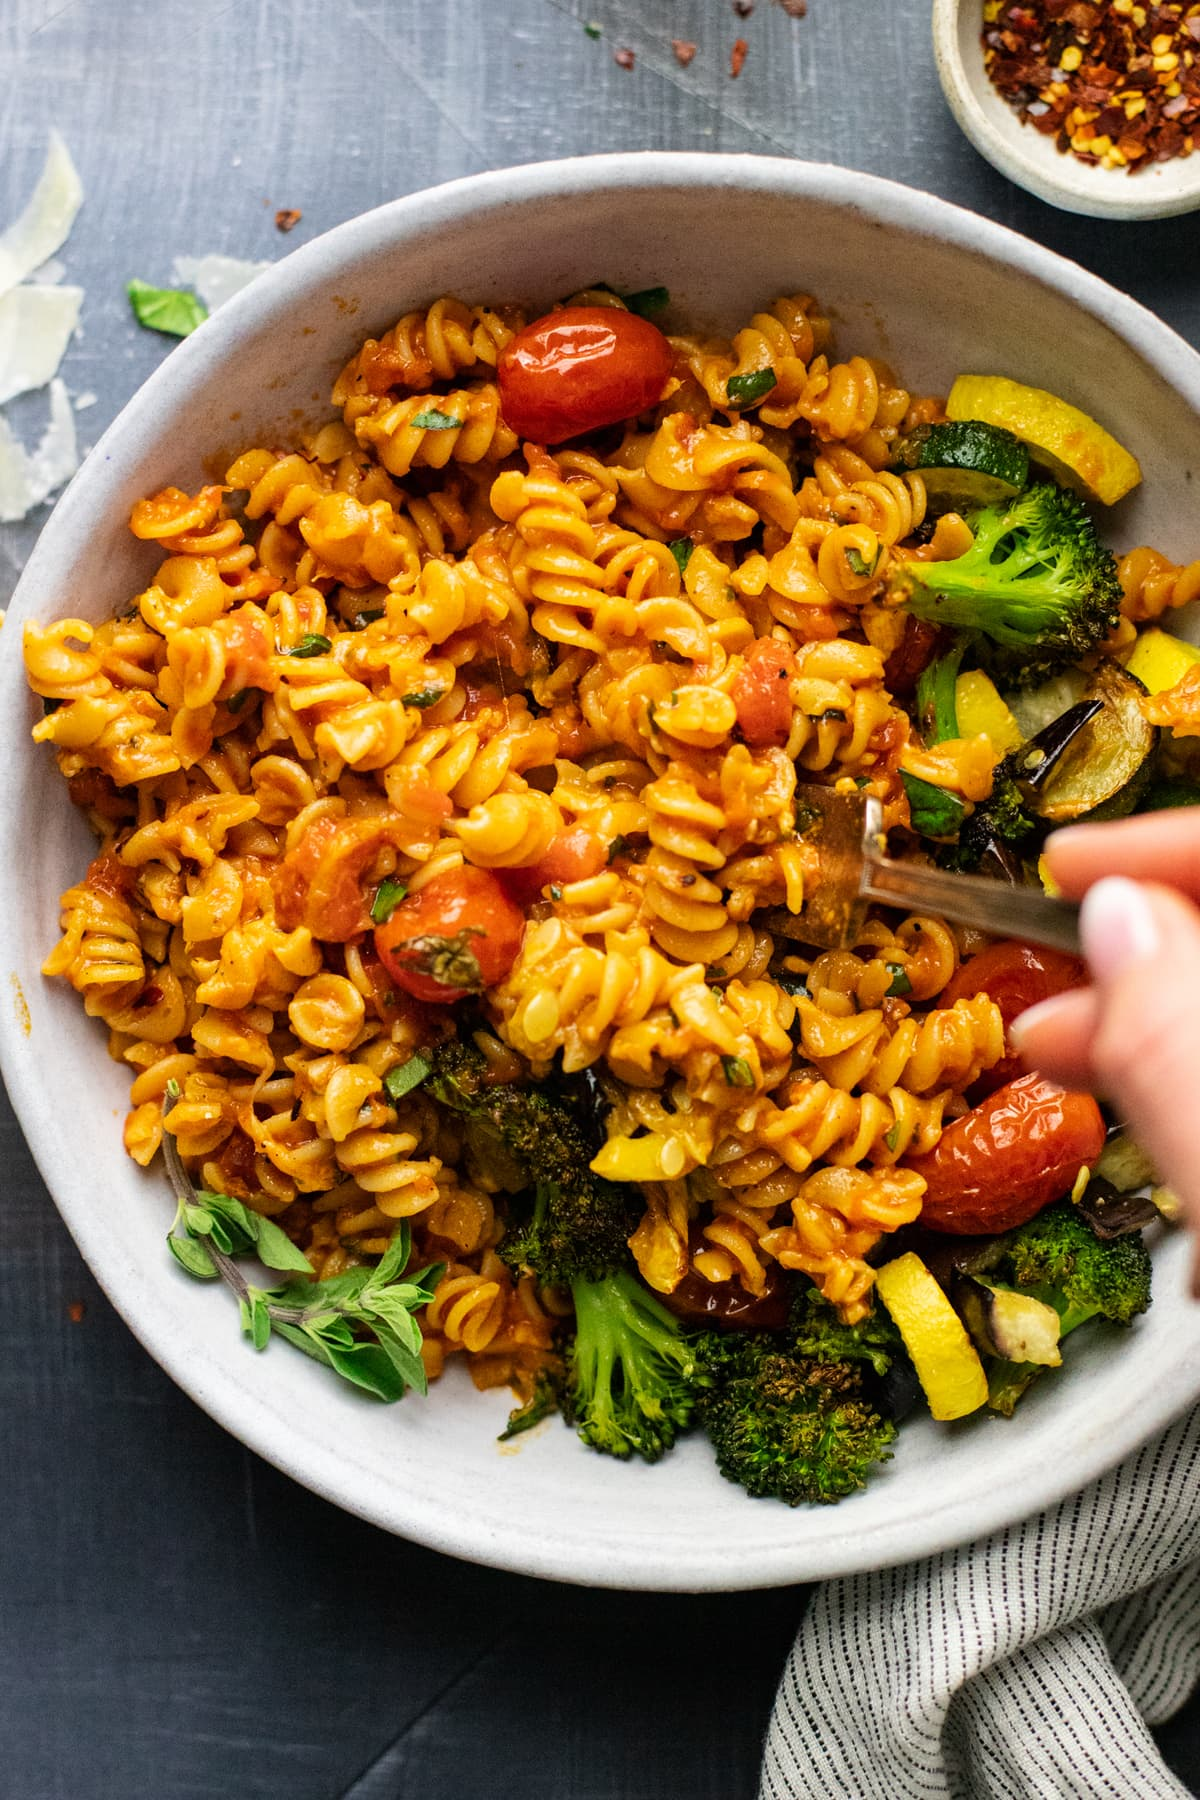 hand holding fork in white bowl of rotini pasta noodles and roasted vegetables.